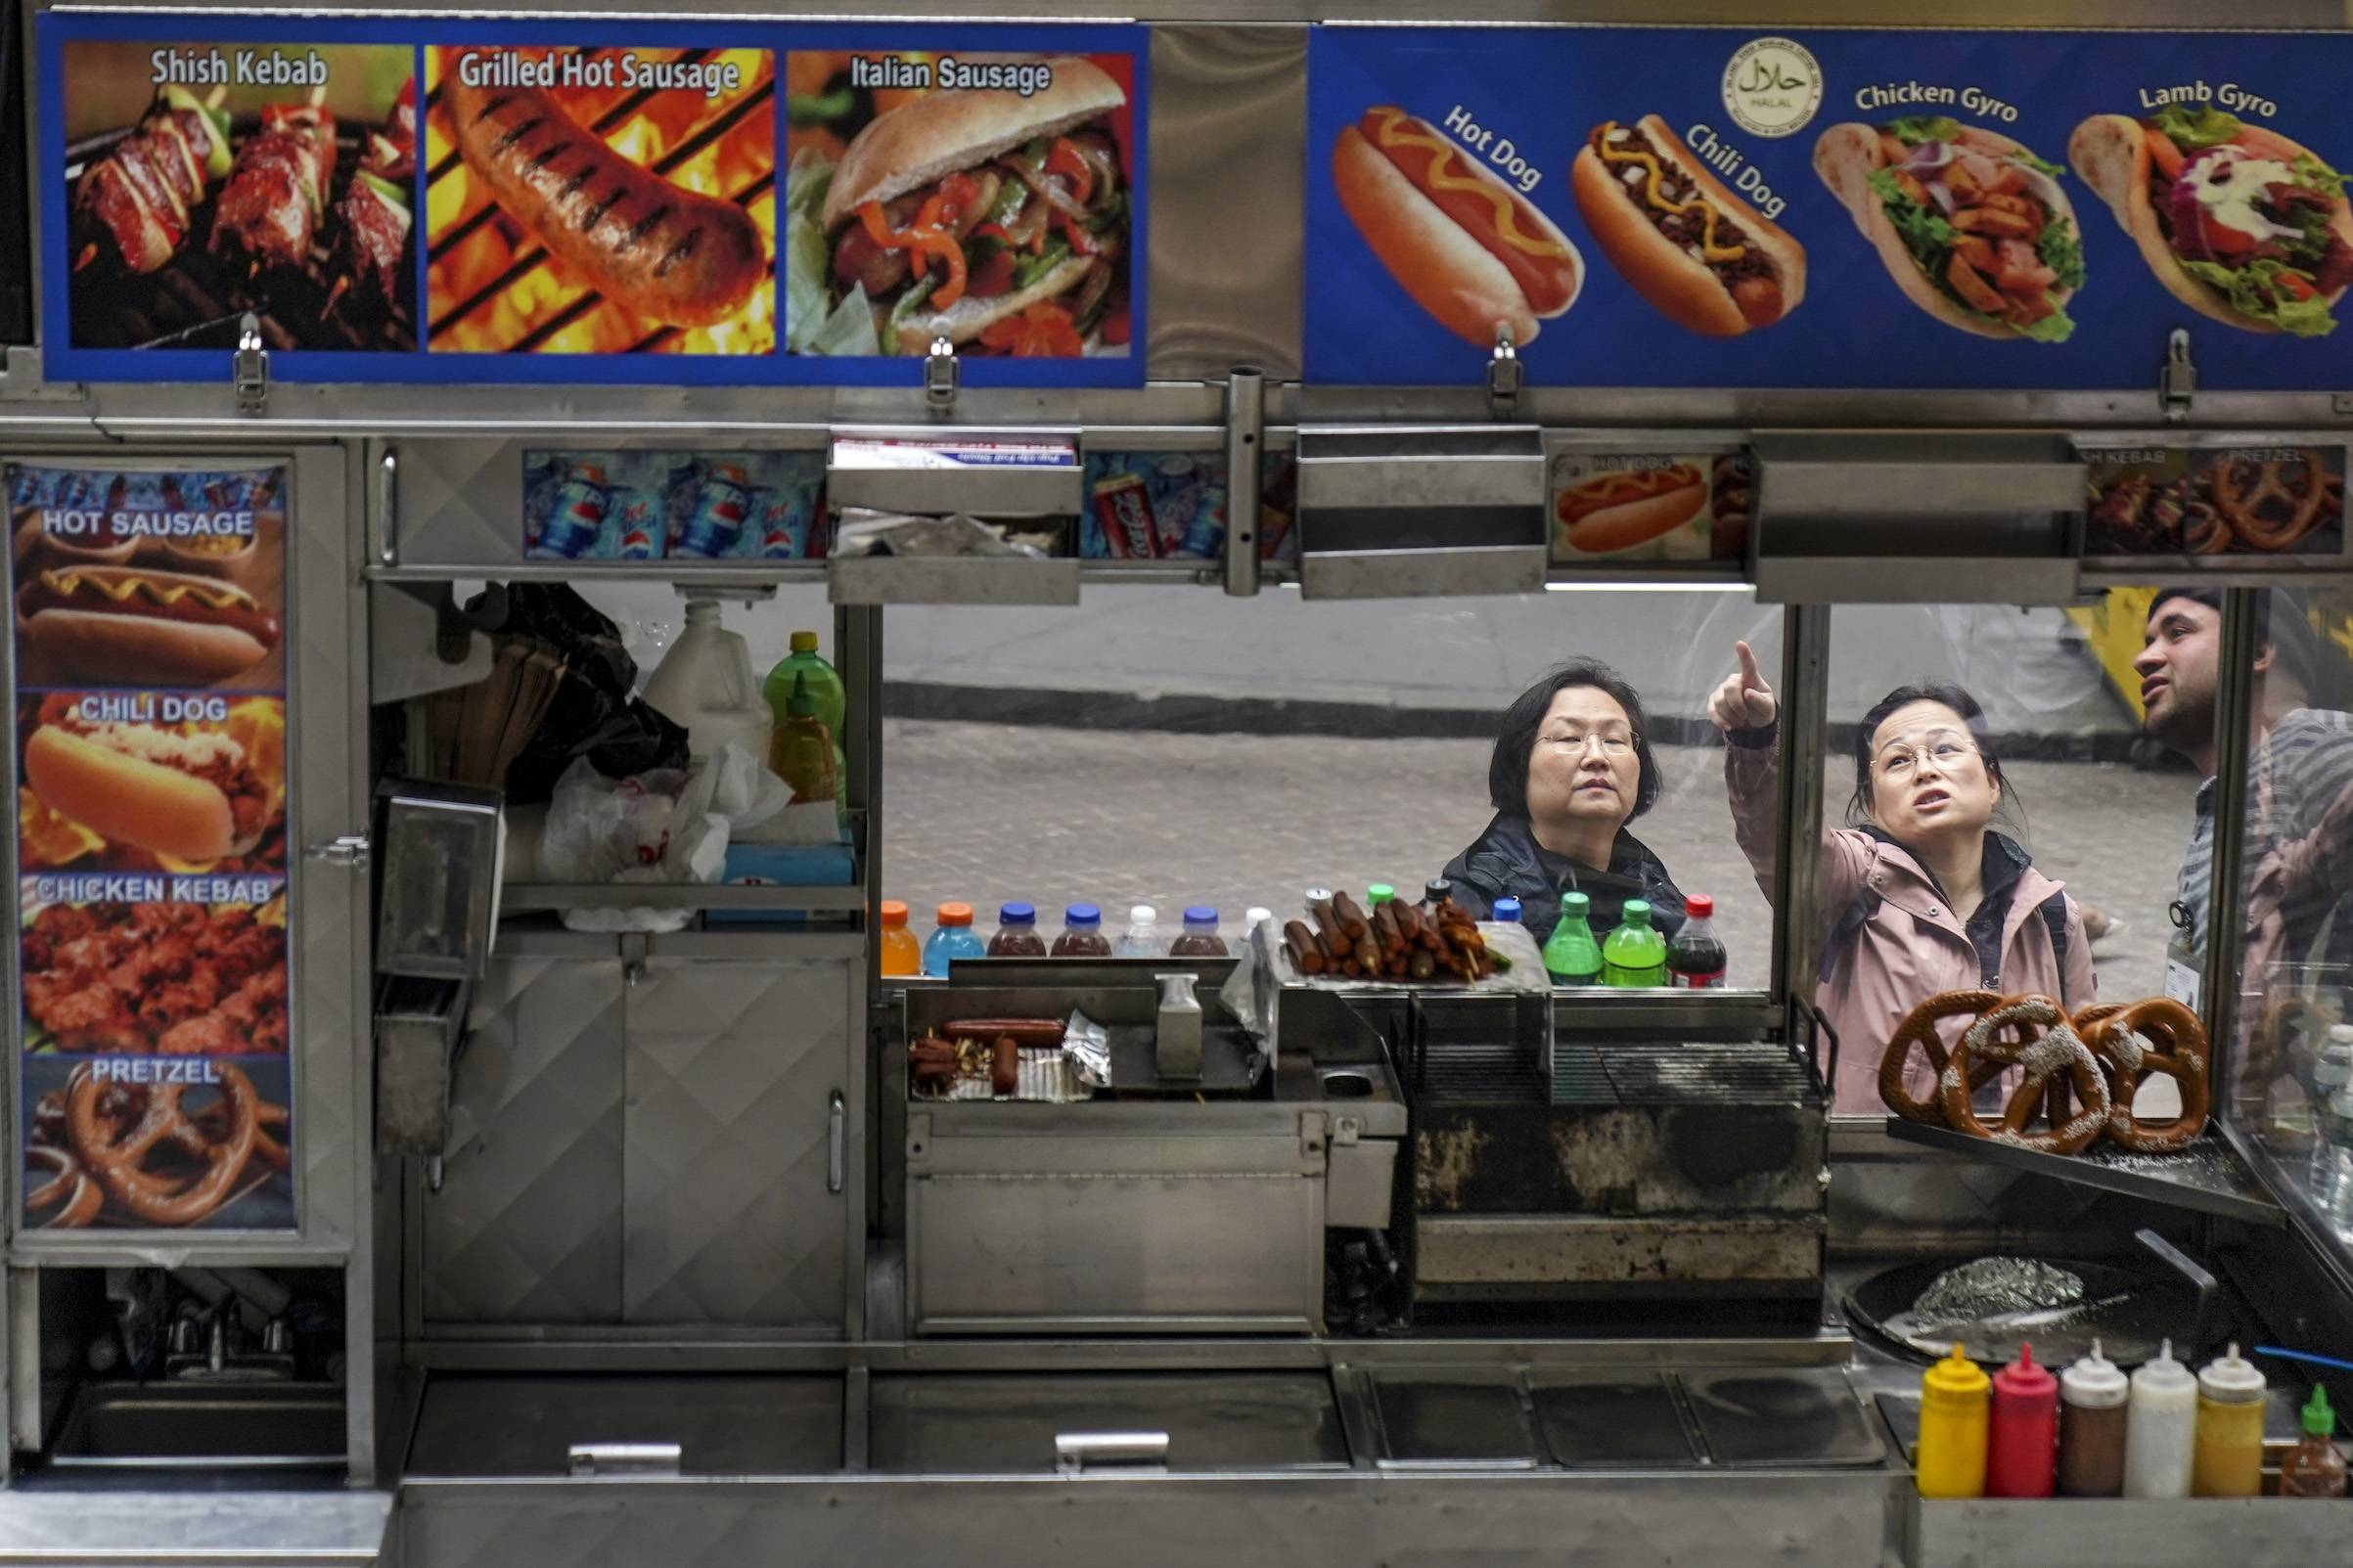 Customers order from a street food vendor on Wall Street during the lunch hour in Lower Manhattan, April 12, 2019 in New York City.